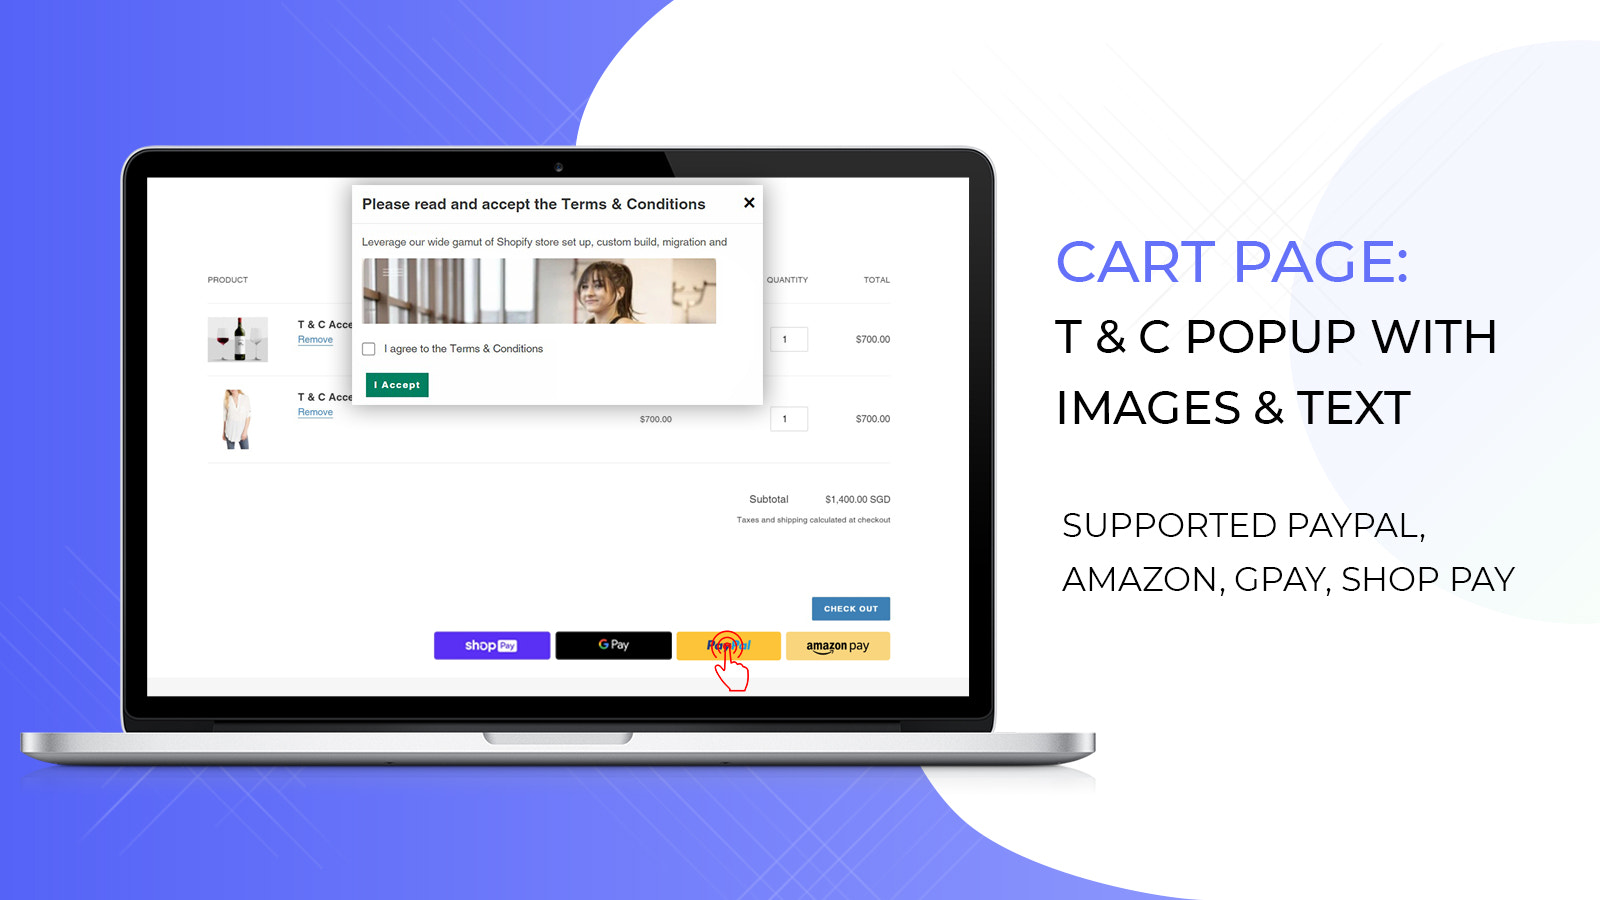 Terms and Conditions Checkbox on shopify cart